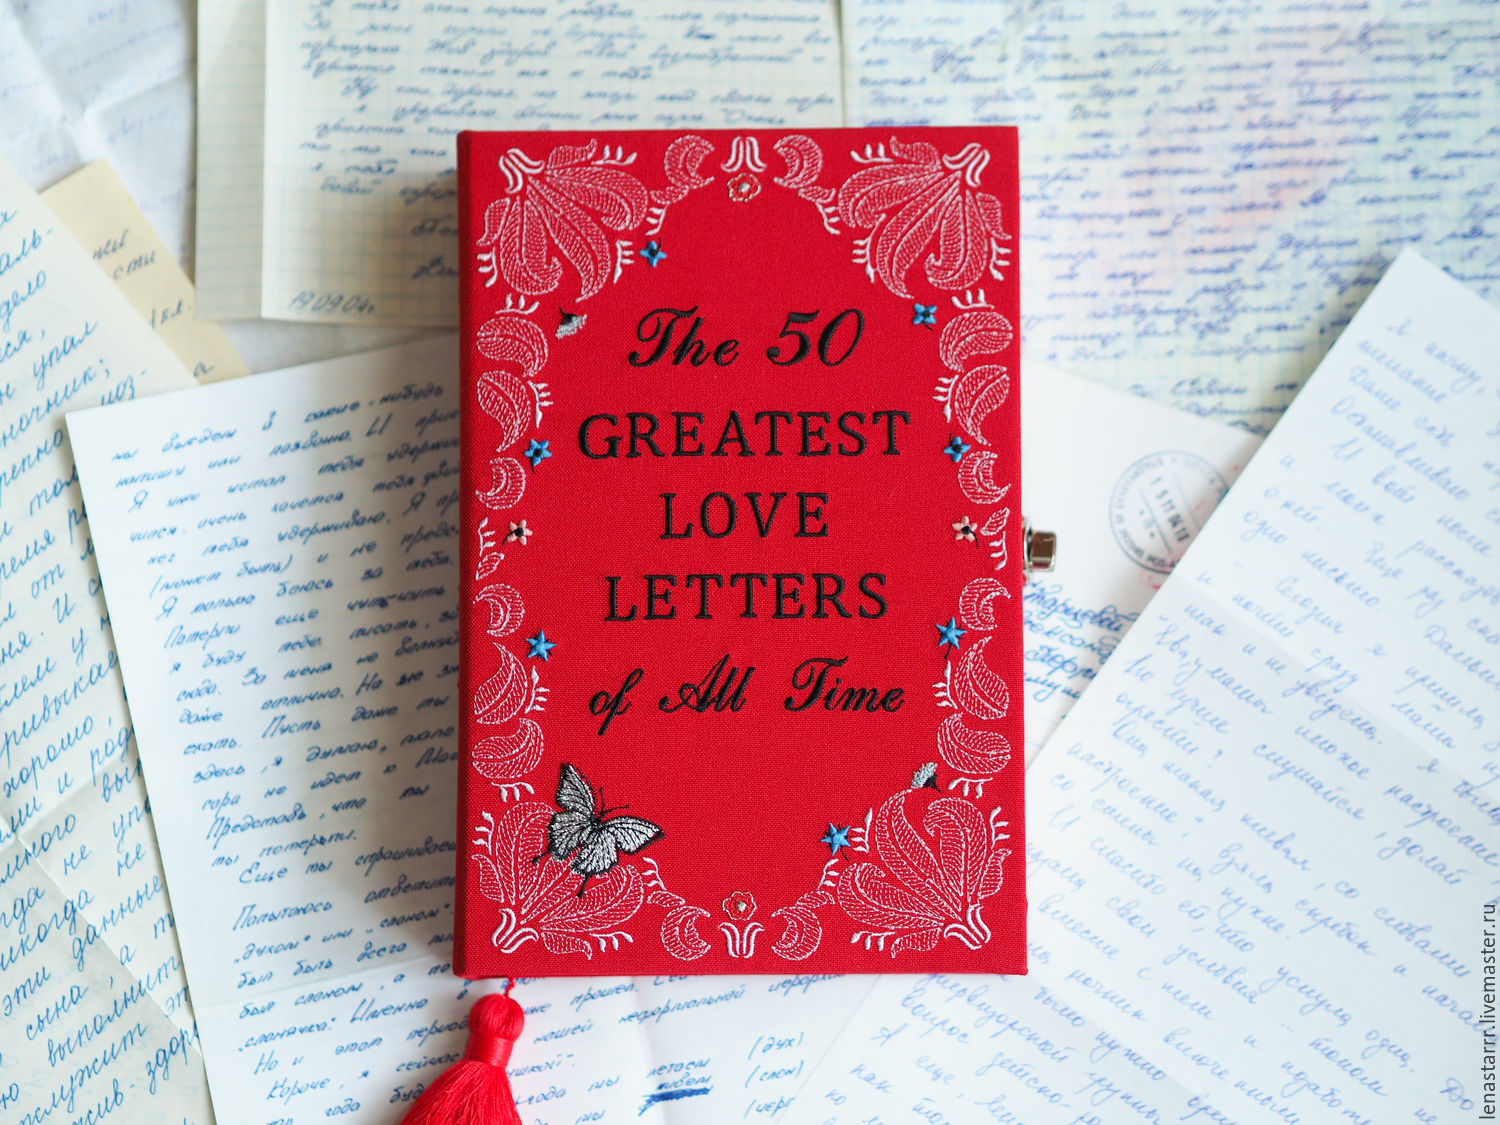 The 50 Greatest Love Letters Of All